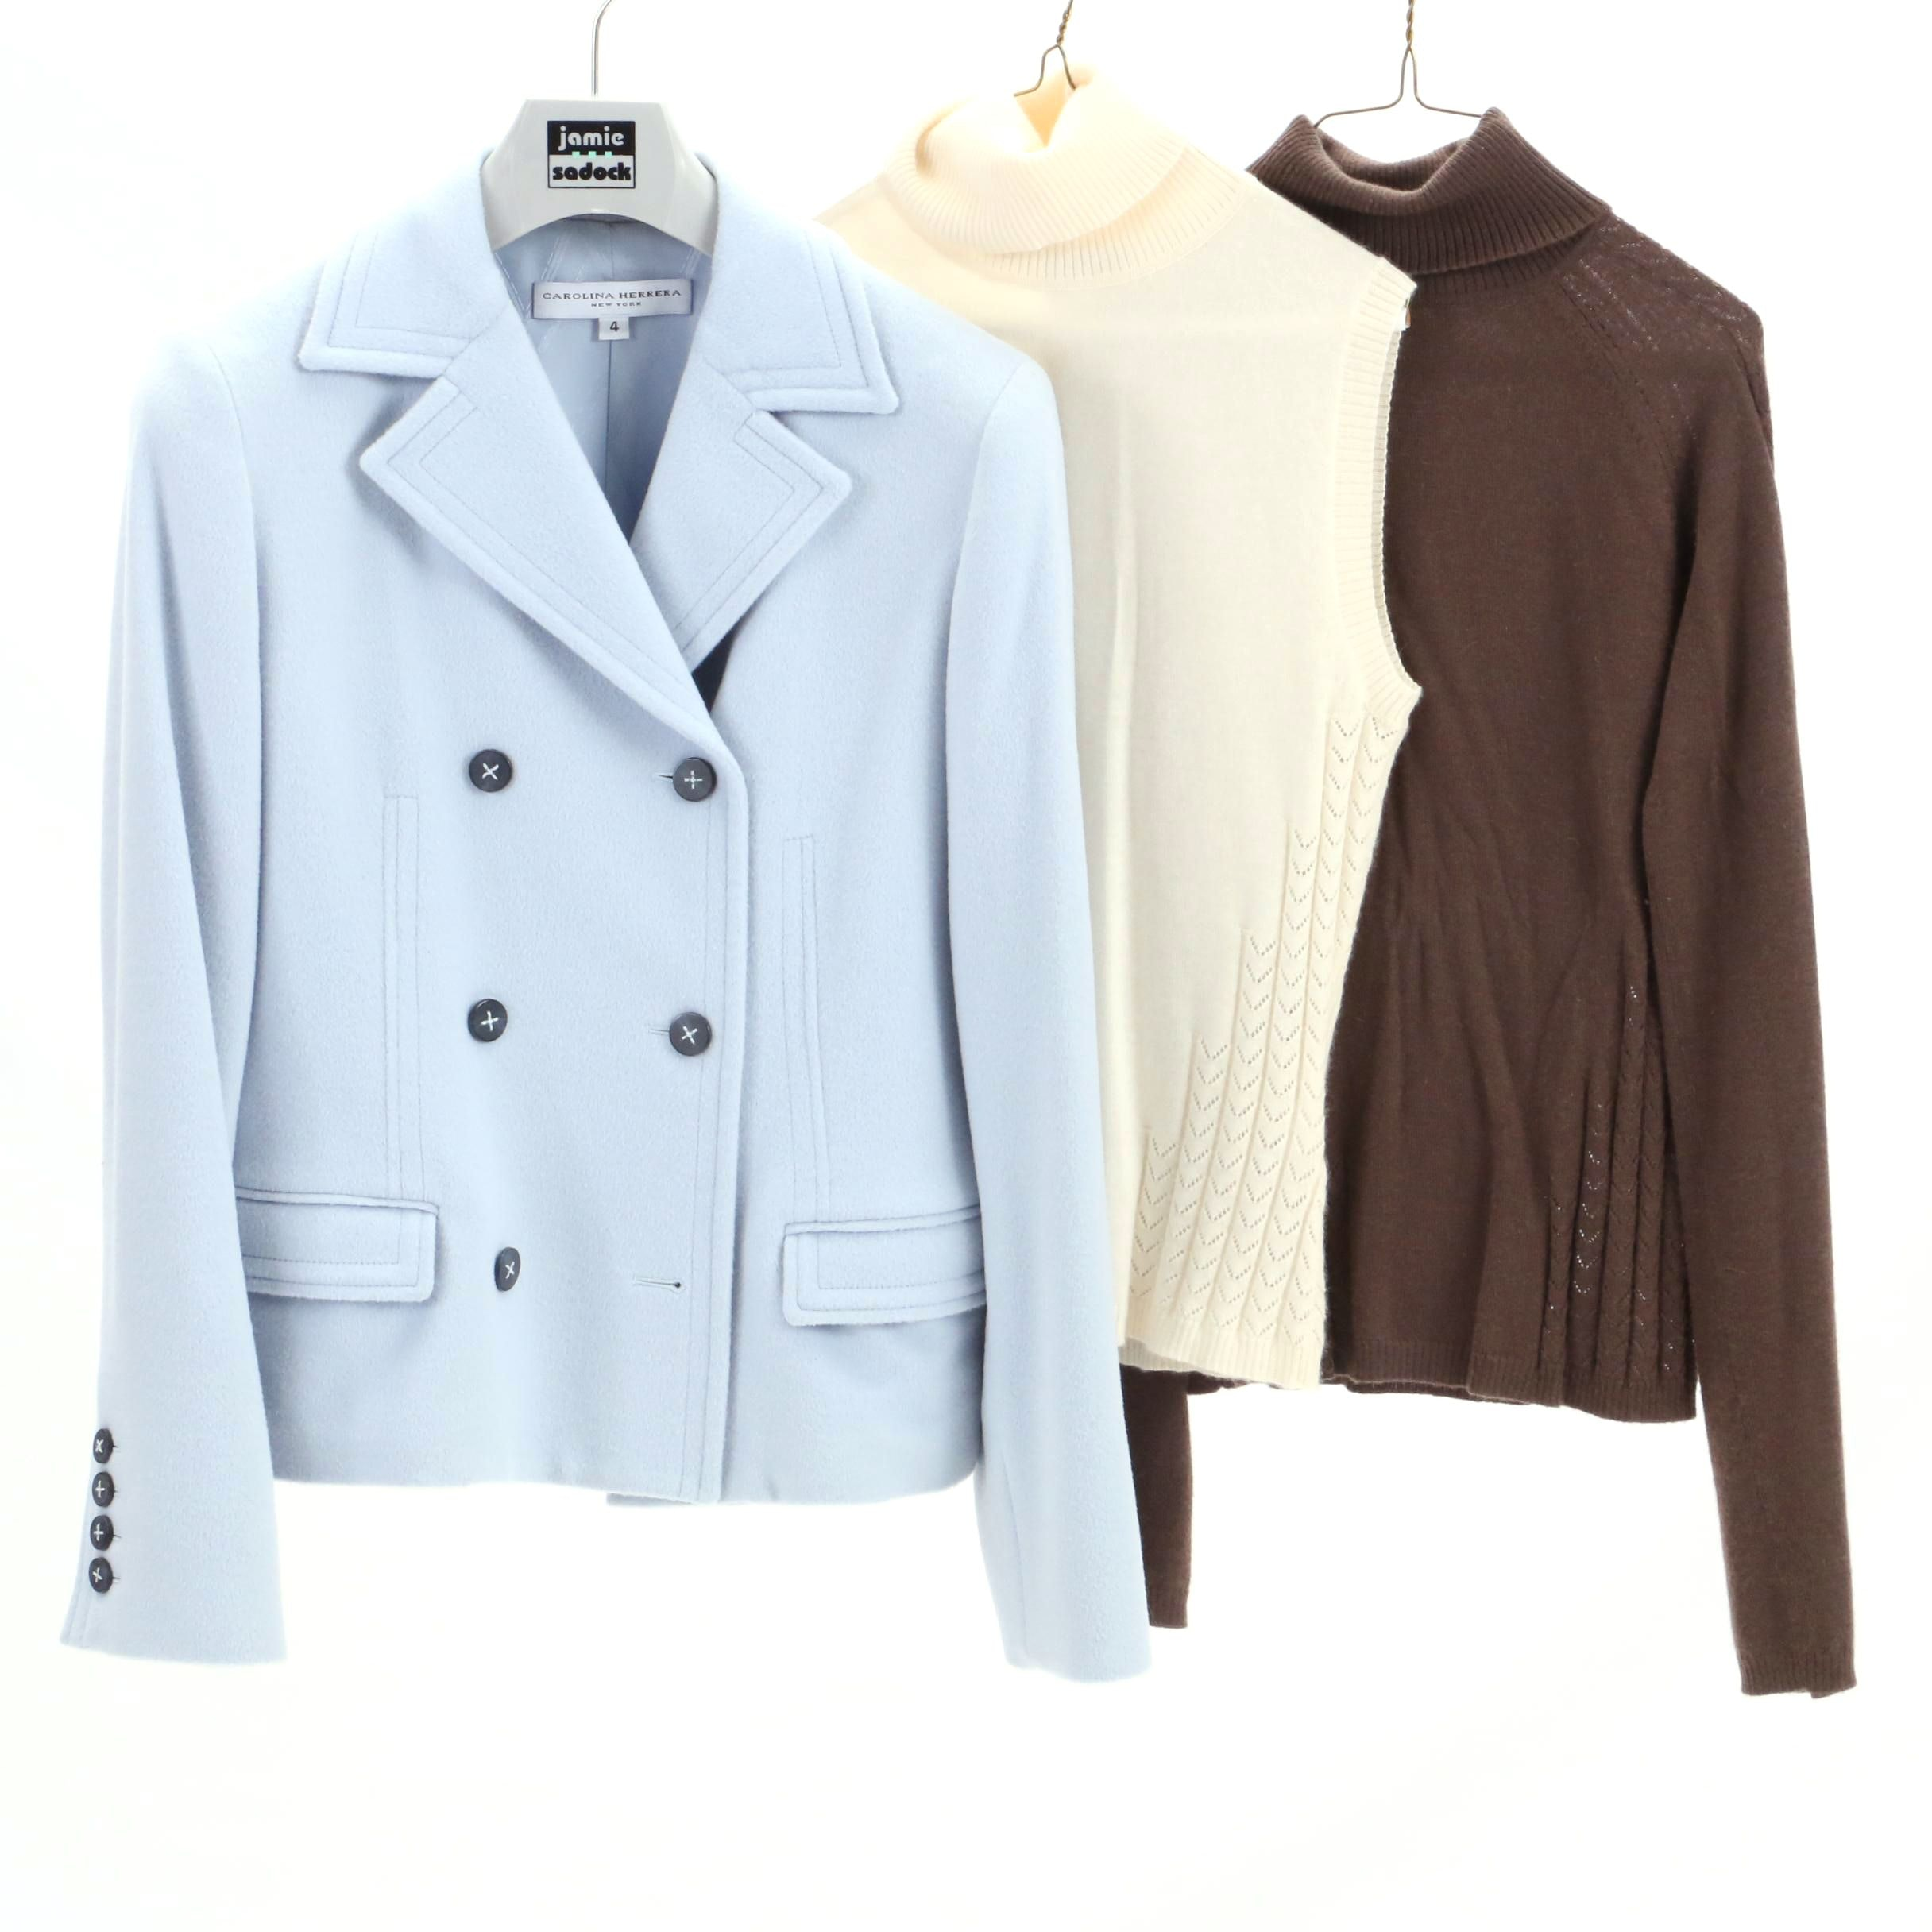 Carolina Herrera Peacoat and Cashmere Turtleneck Sweaters